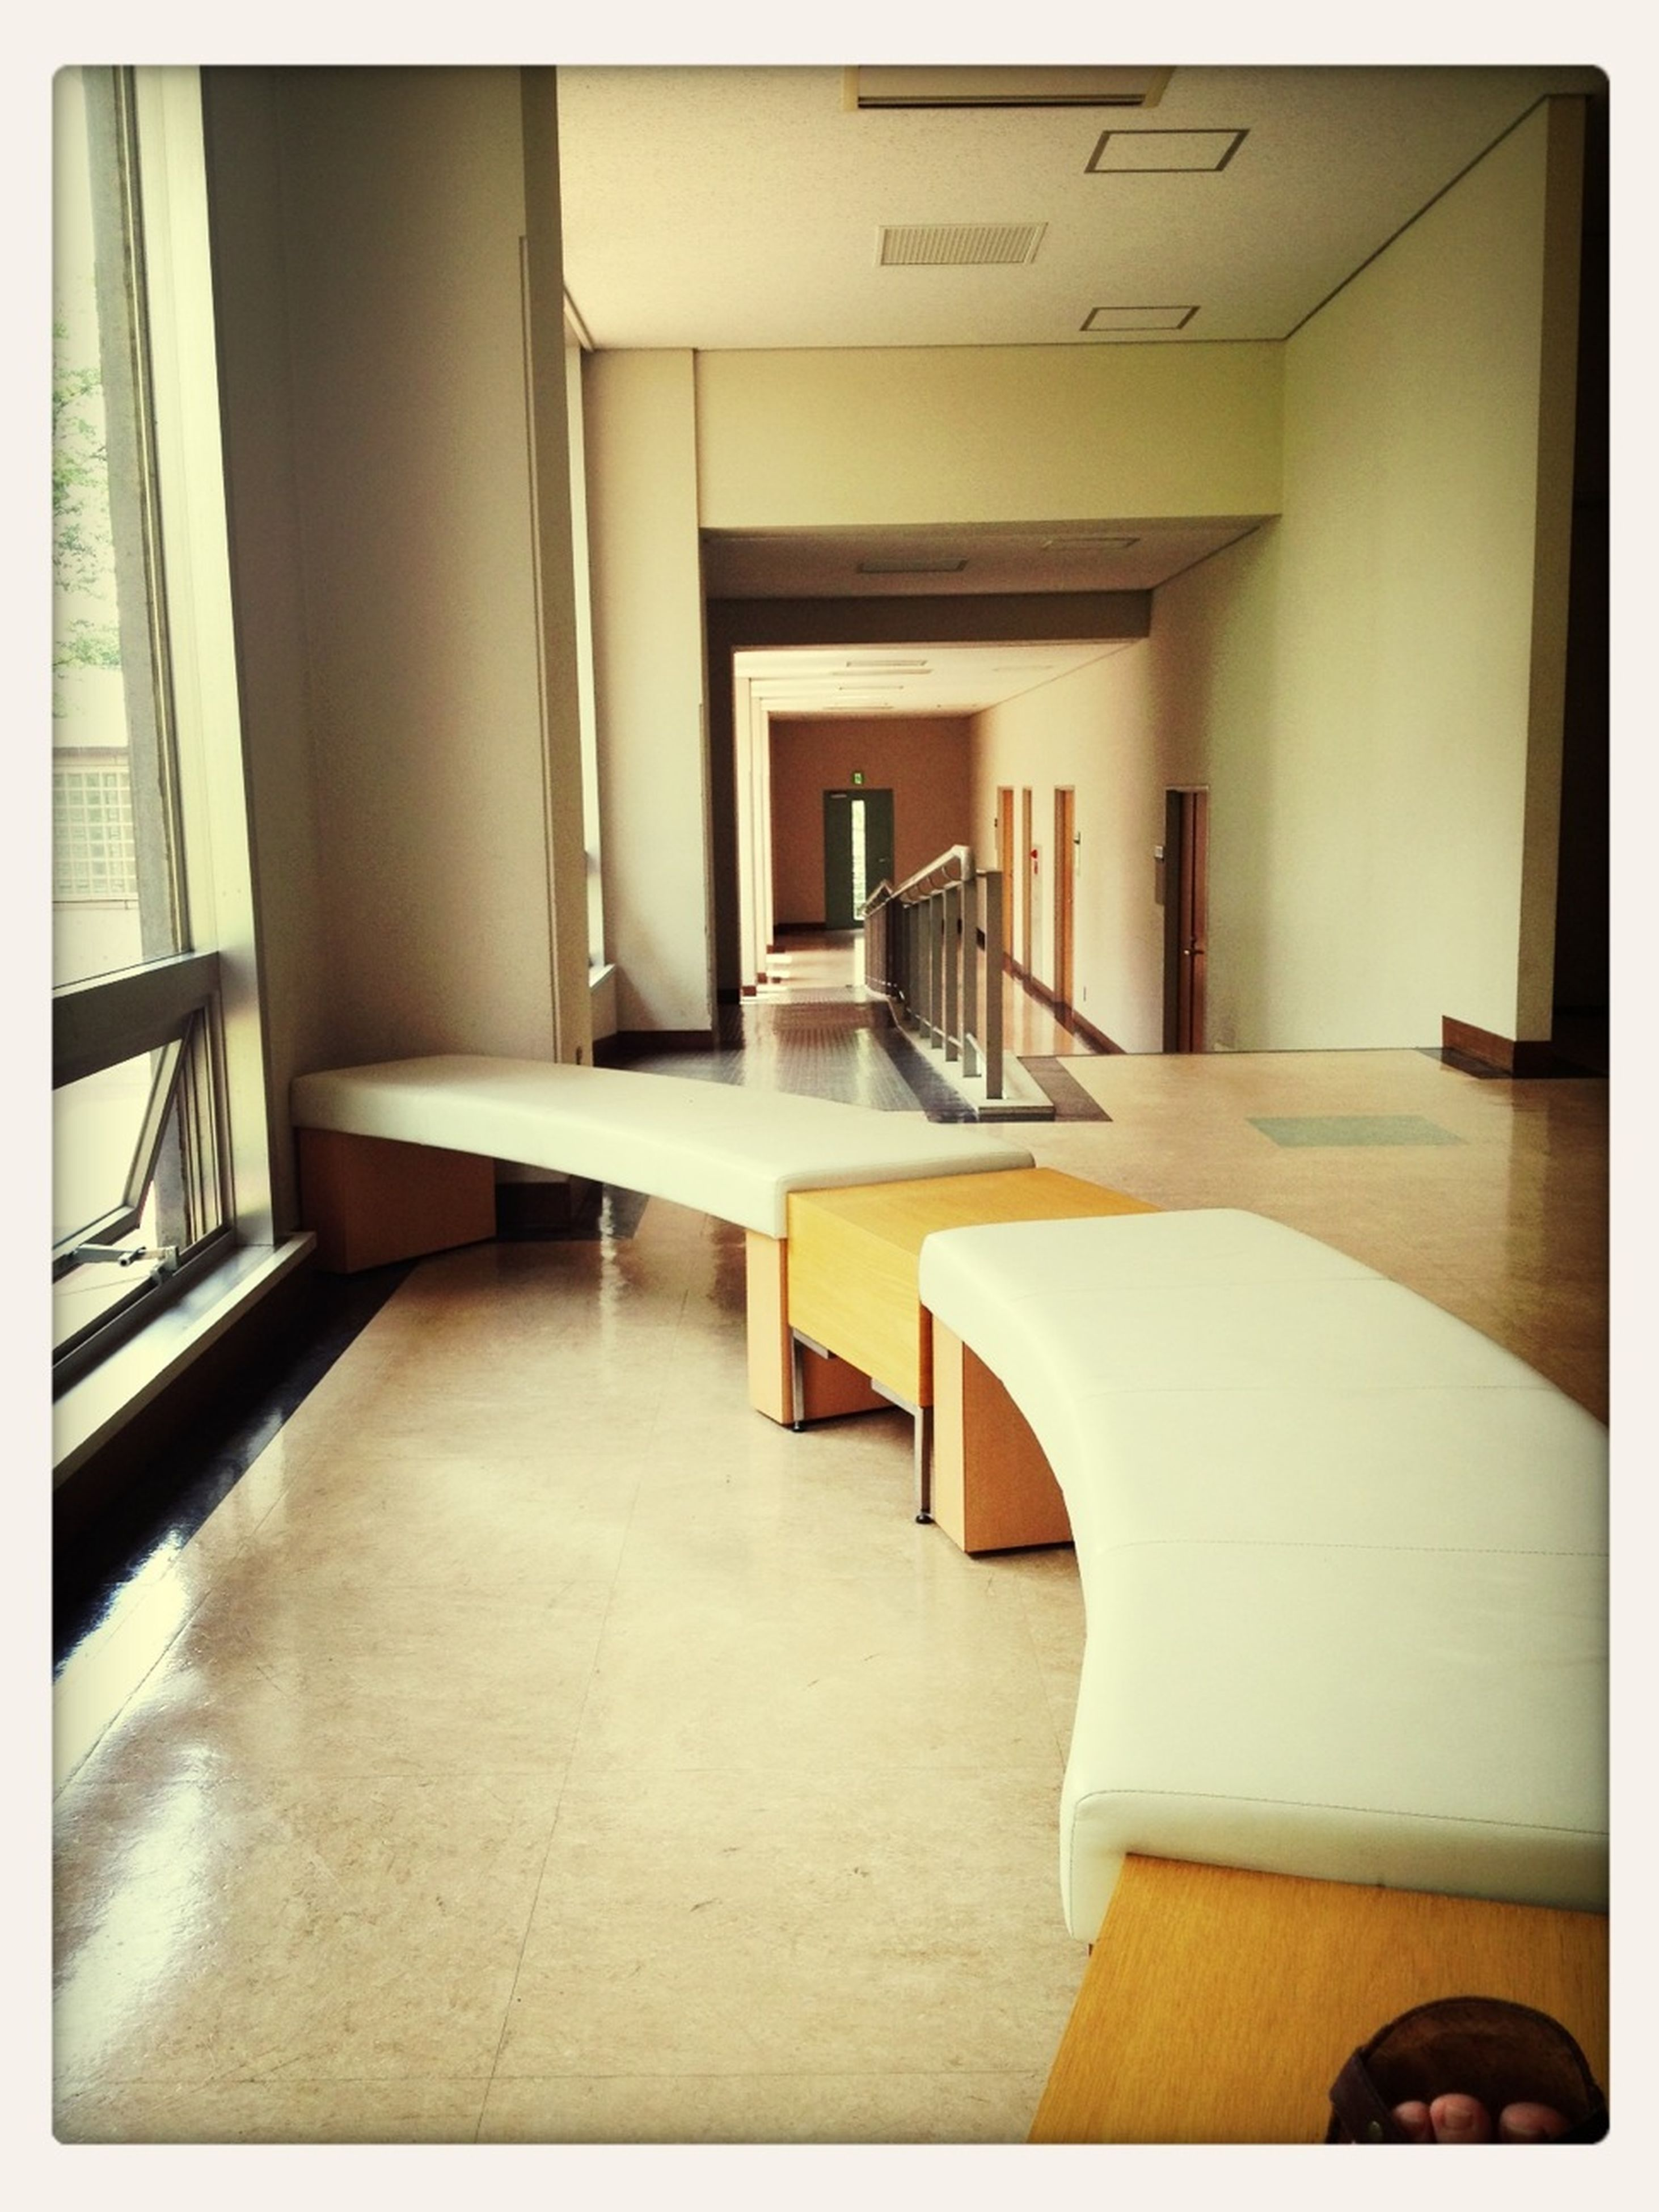 transfer print, indoors, auto post production filter, empty, absence, chair, architecture, flooring, built structure, home interior, table, tiled floor, house, no people, furniture, door, sunlight, seat, floor, hardwood floor